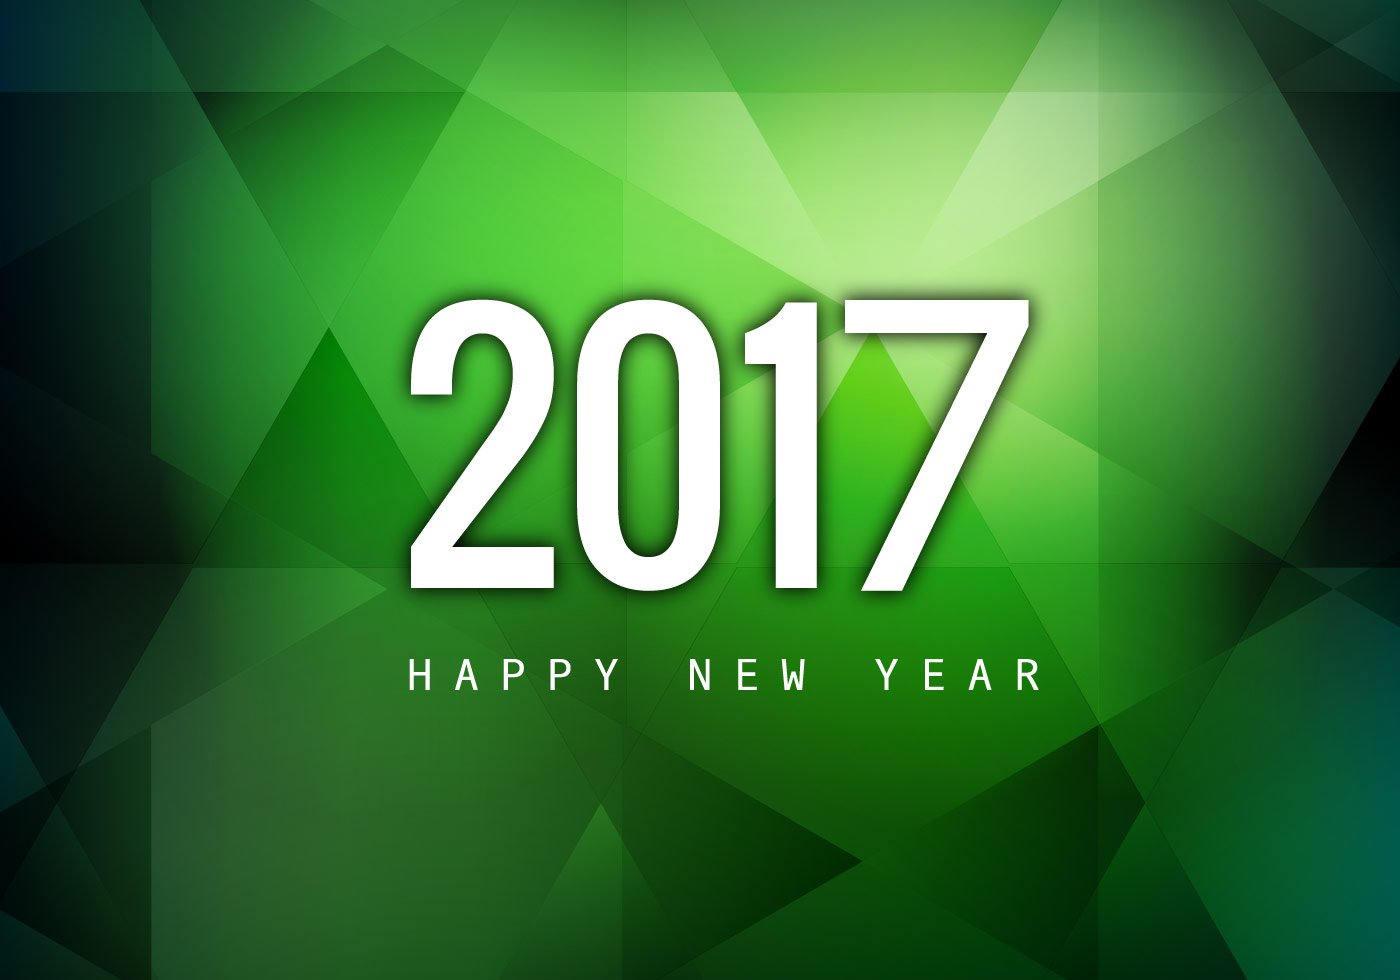 Best Live Happy New Year 2017 HD Wallpaper